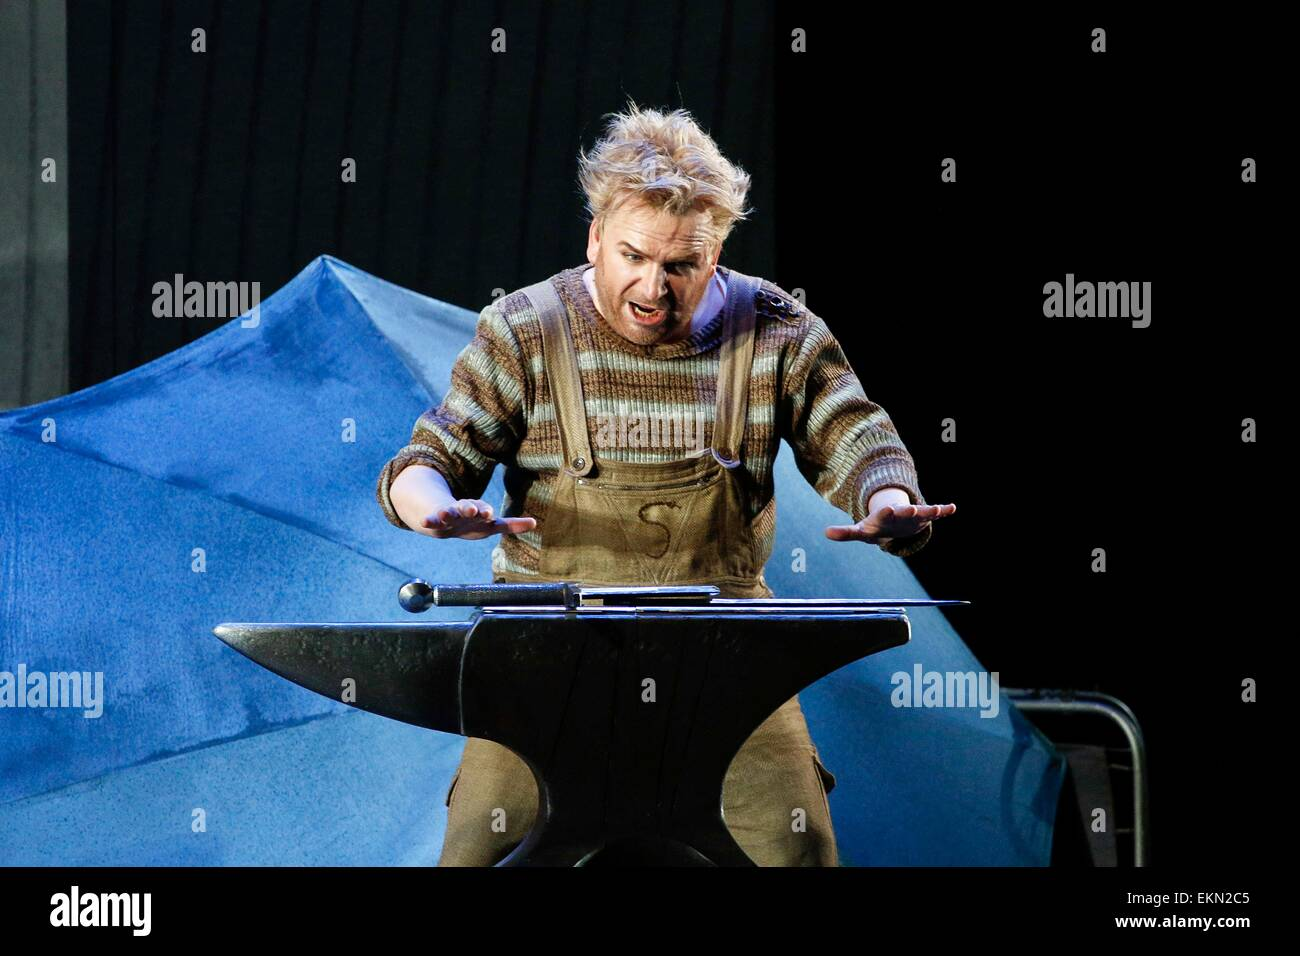 Leipzig, Germany. 7th April 2015, Christian Franz performing as Siegfried in the final dress rehearsal of Richard - Stock Image